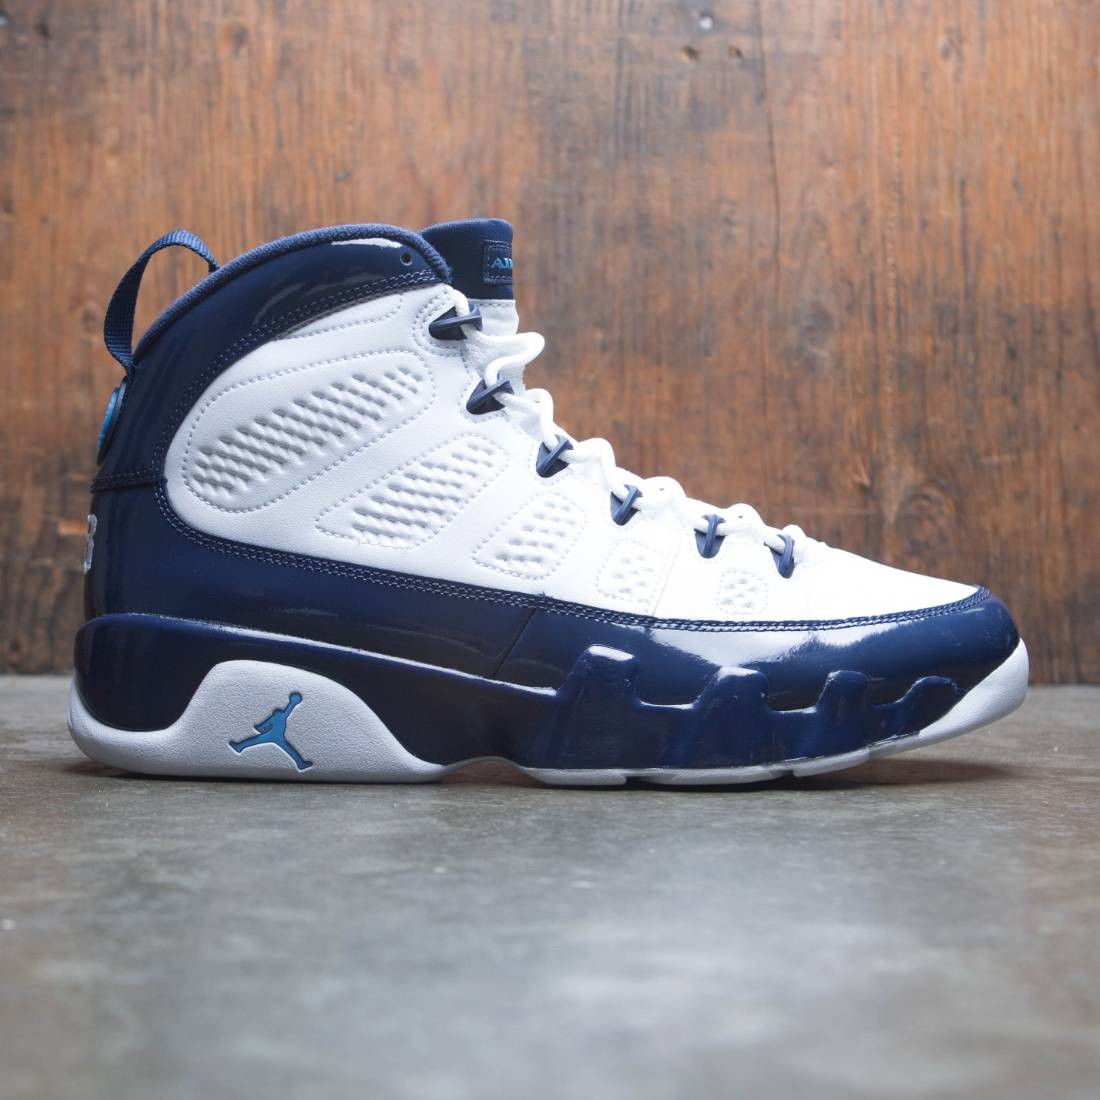 cf76accc961 jordan men air jordan 9 retro white university blue midnight navy